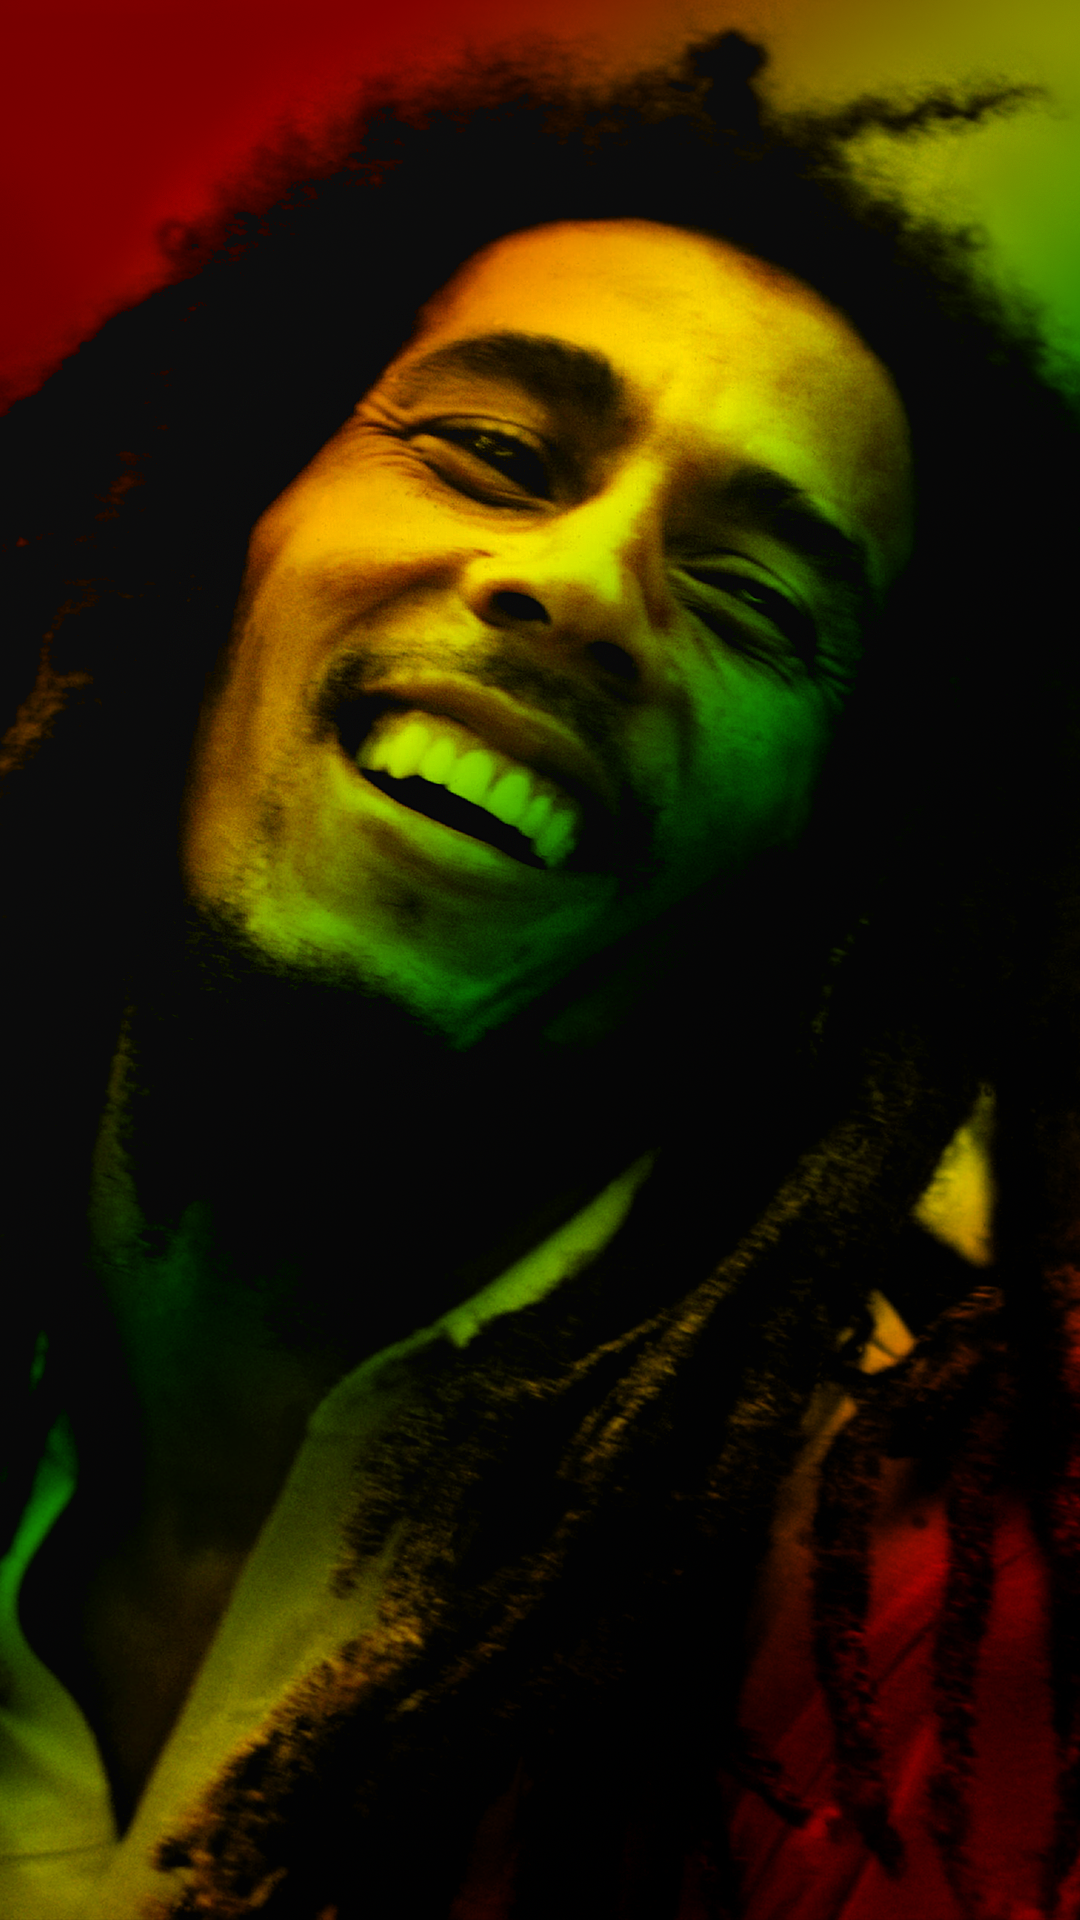 Ultra Hd Bob Marley Wallpaper For Your Mobile Phone 0339